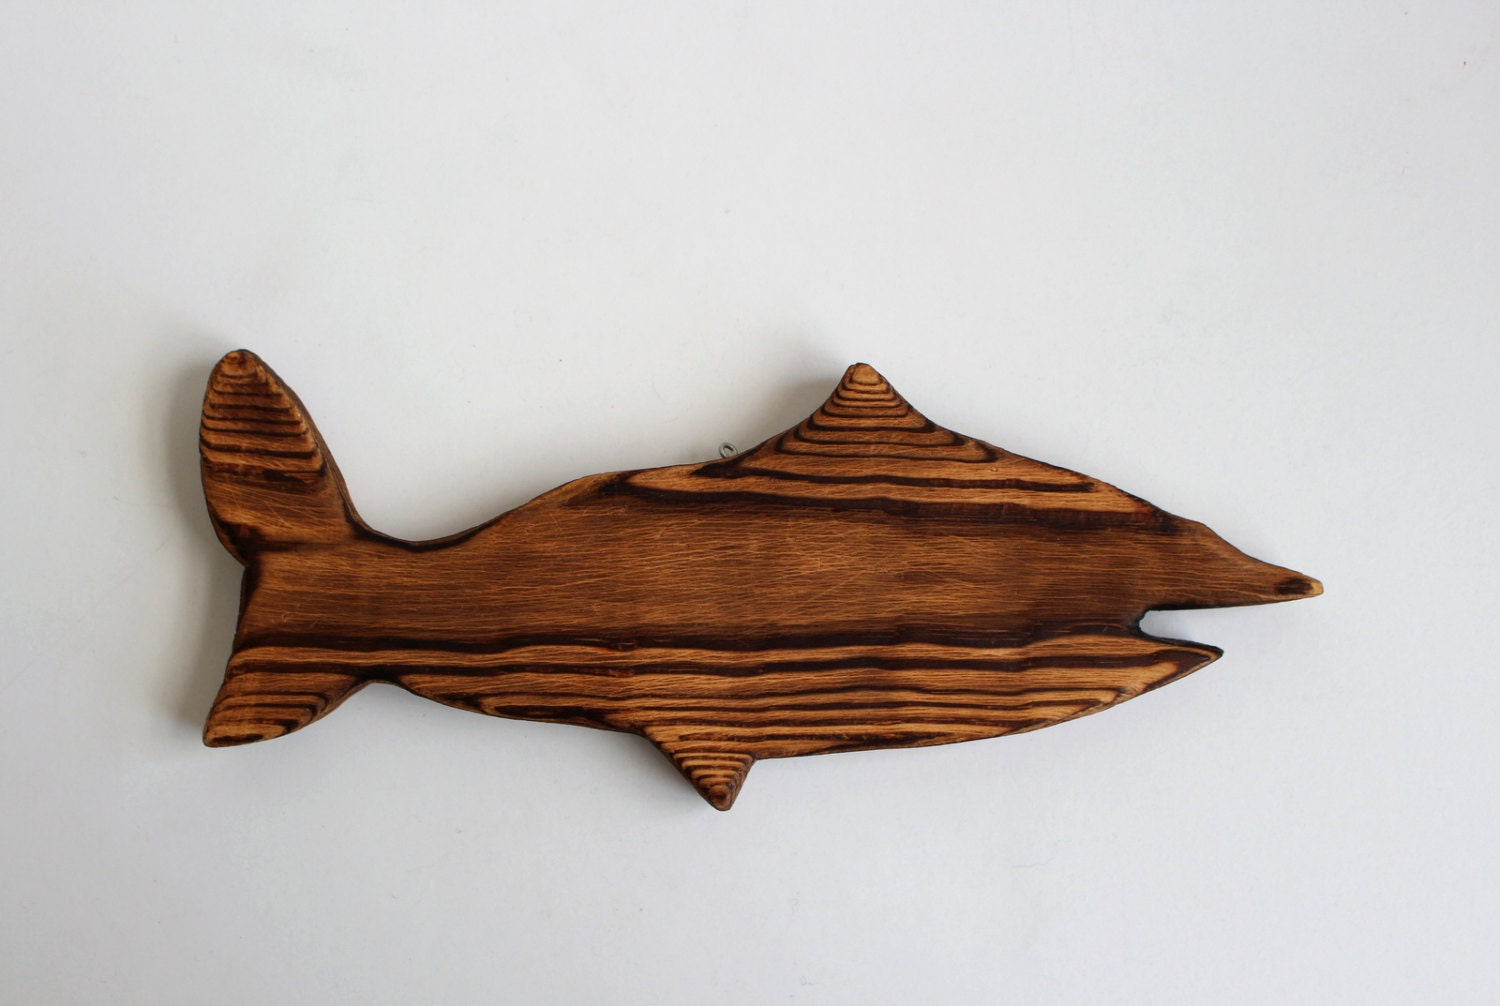 Wall Decor With Fish : Vintage wood fish wall decor wooden figurine handmade